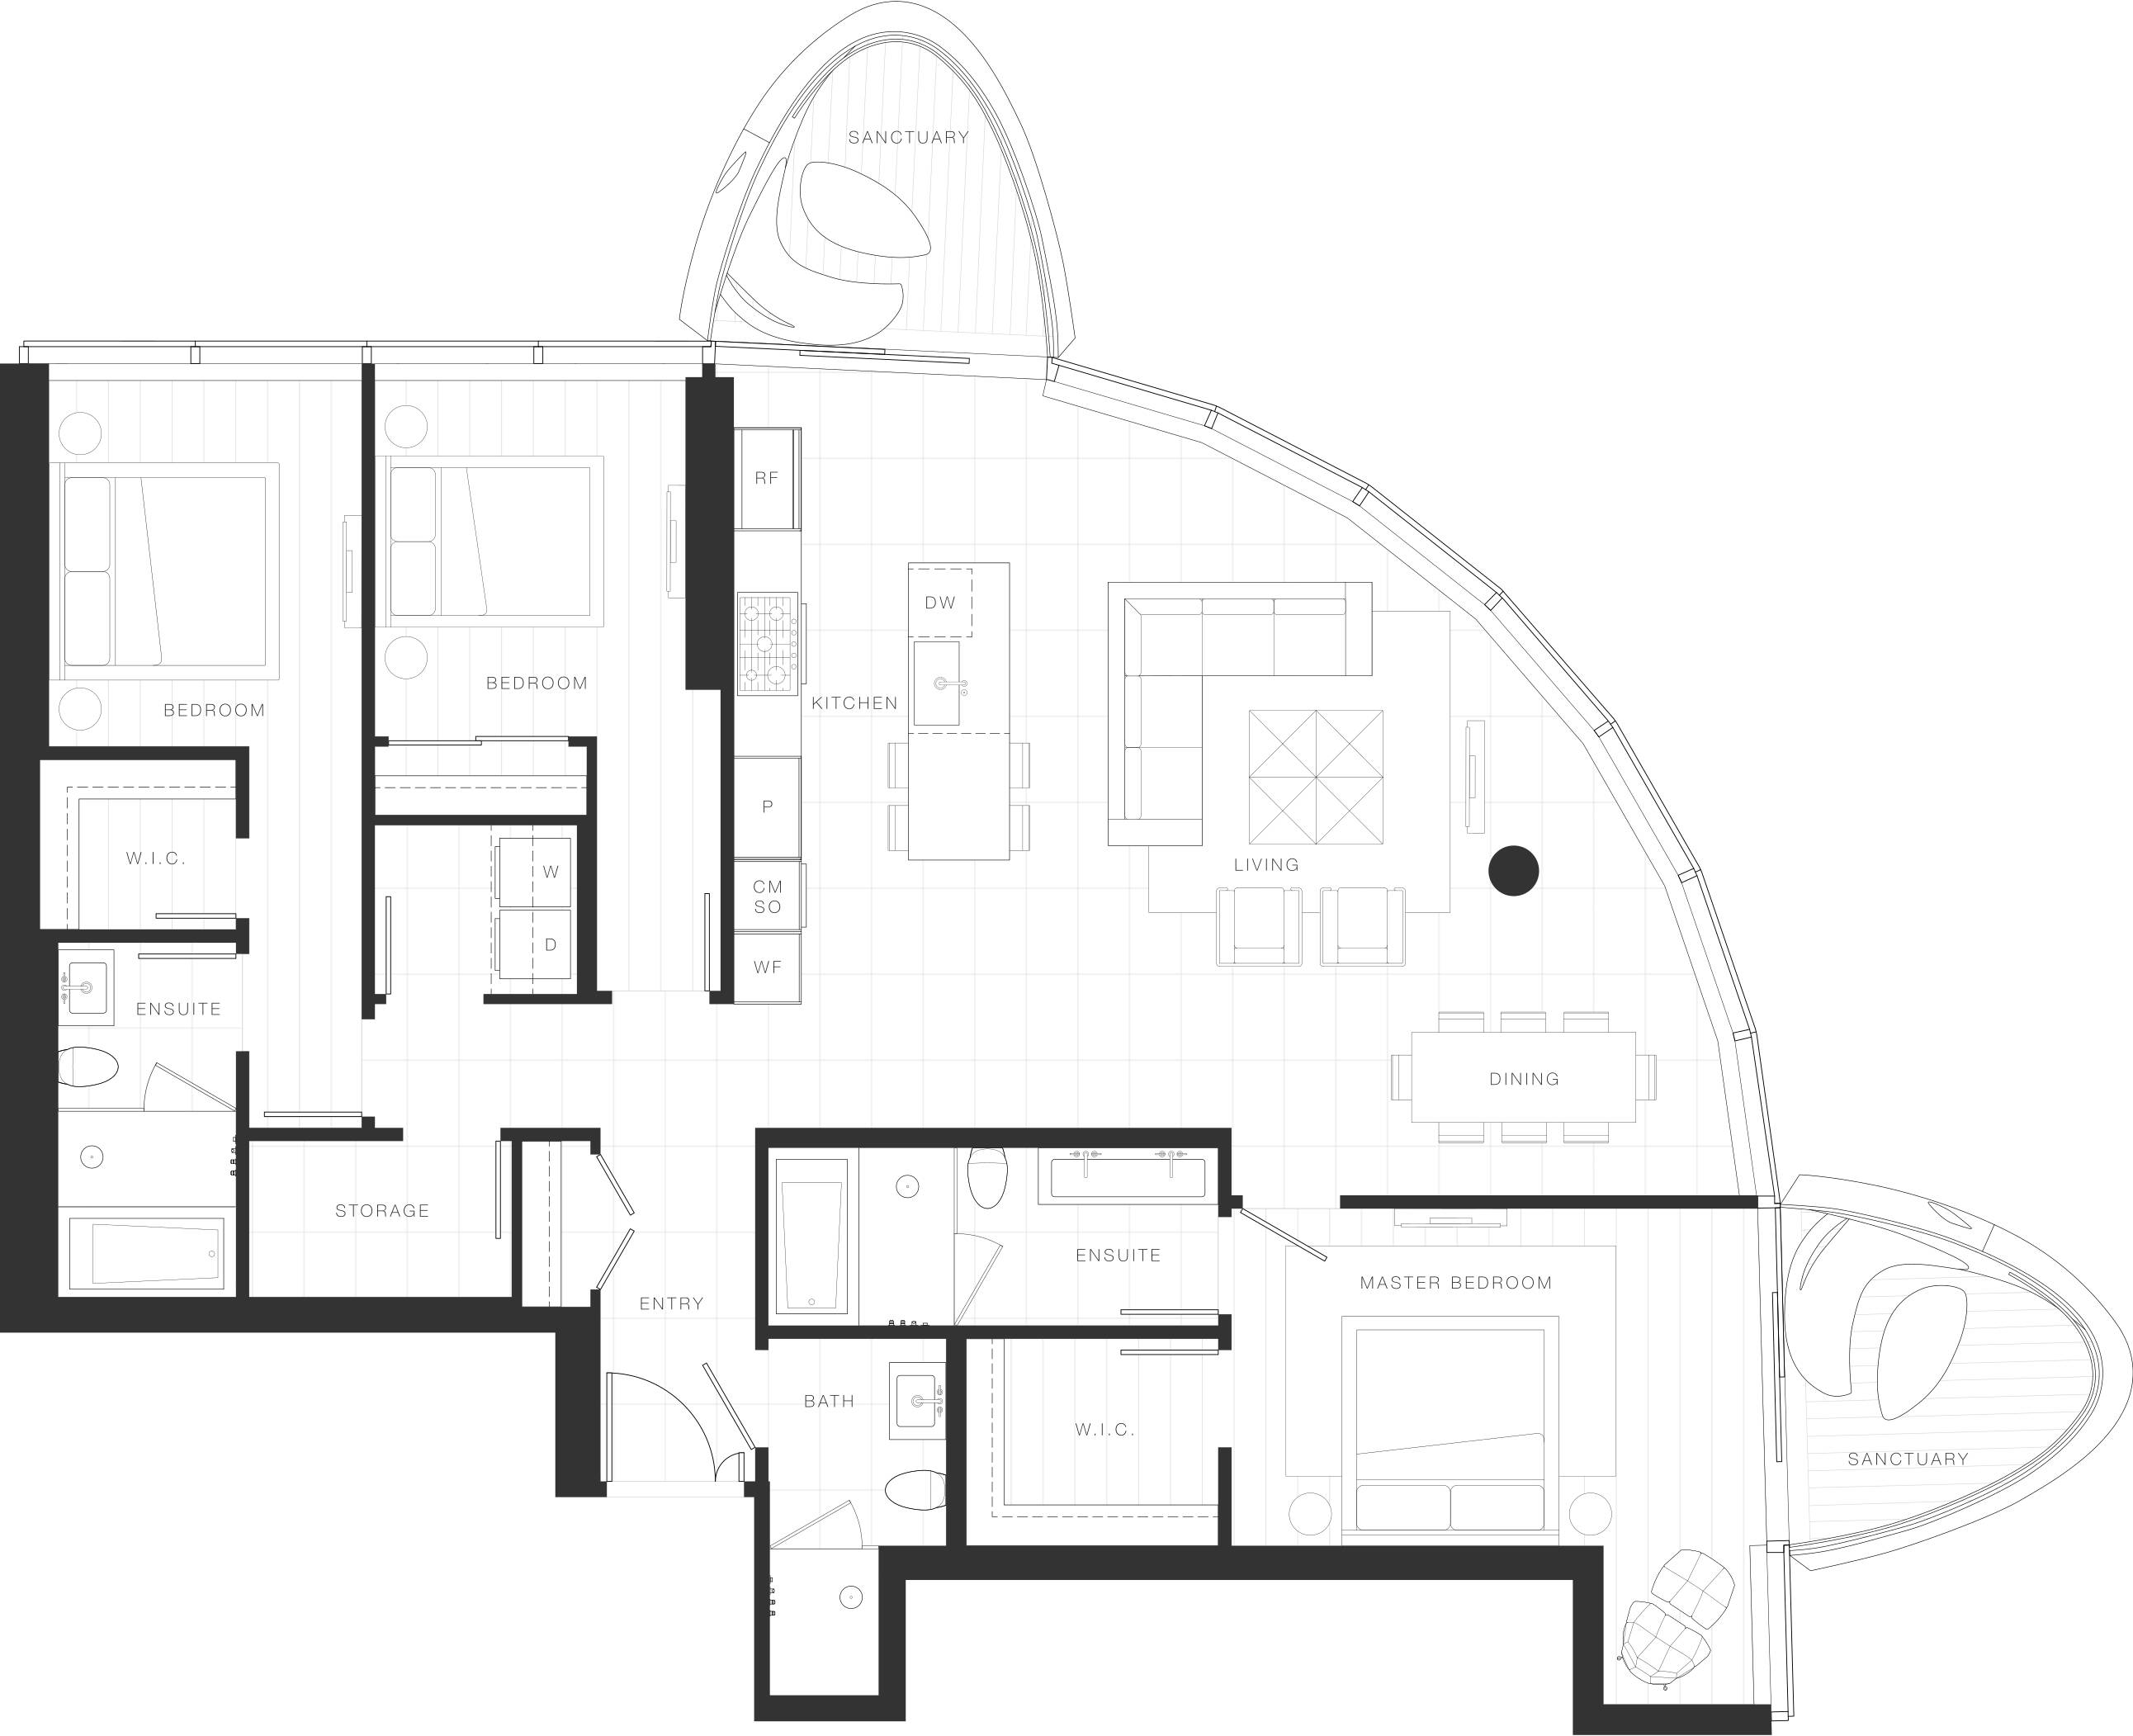 Penthouse Floorplan - Unit 1701